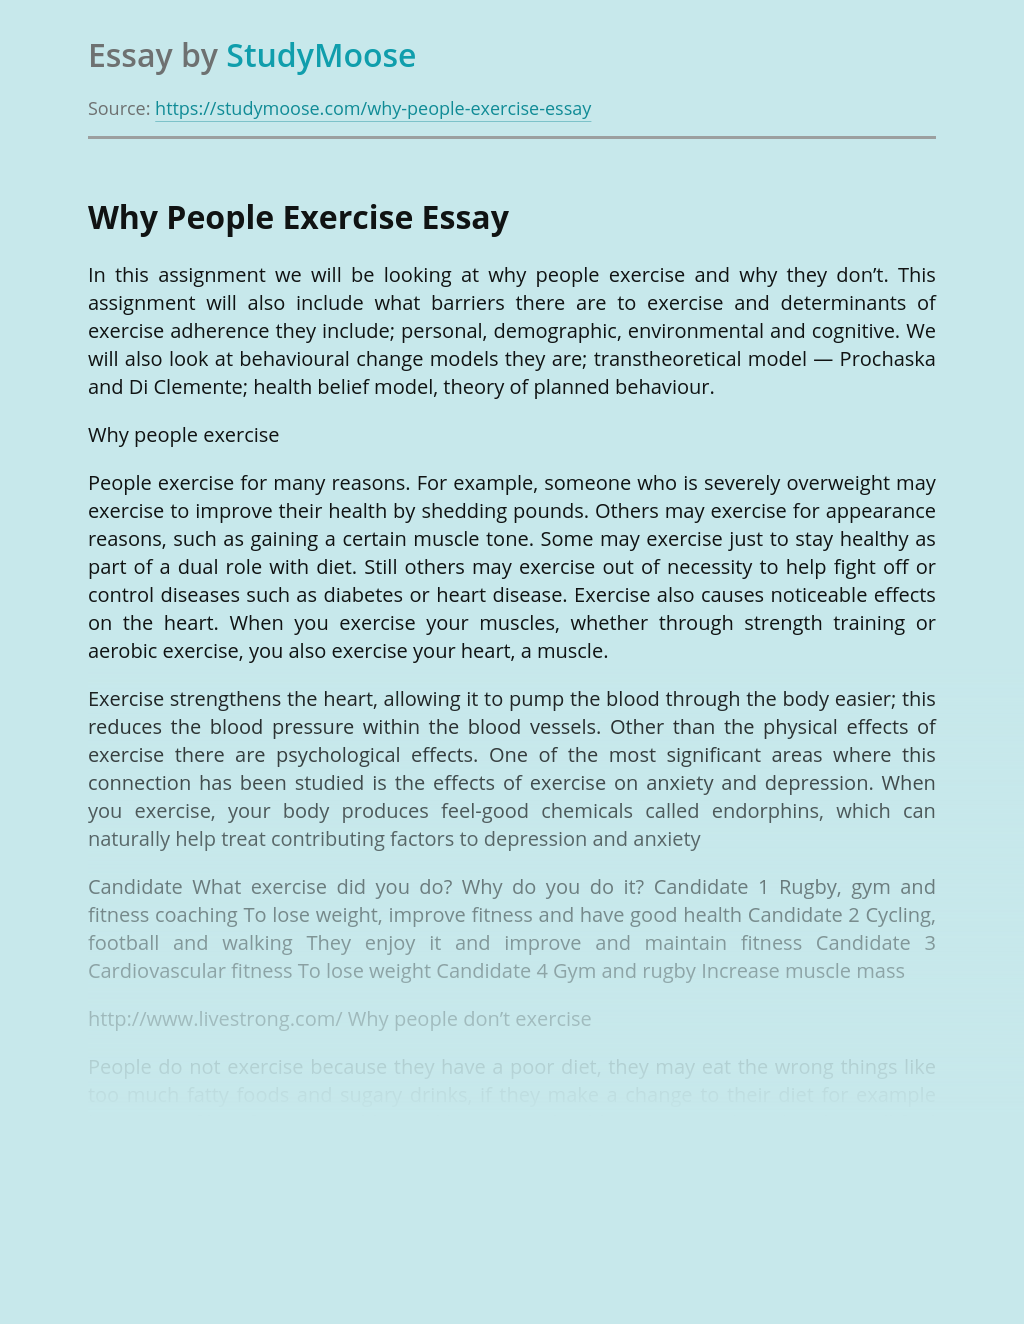 Why People Exercise and Why They Don't